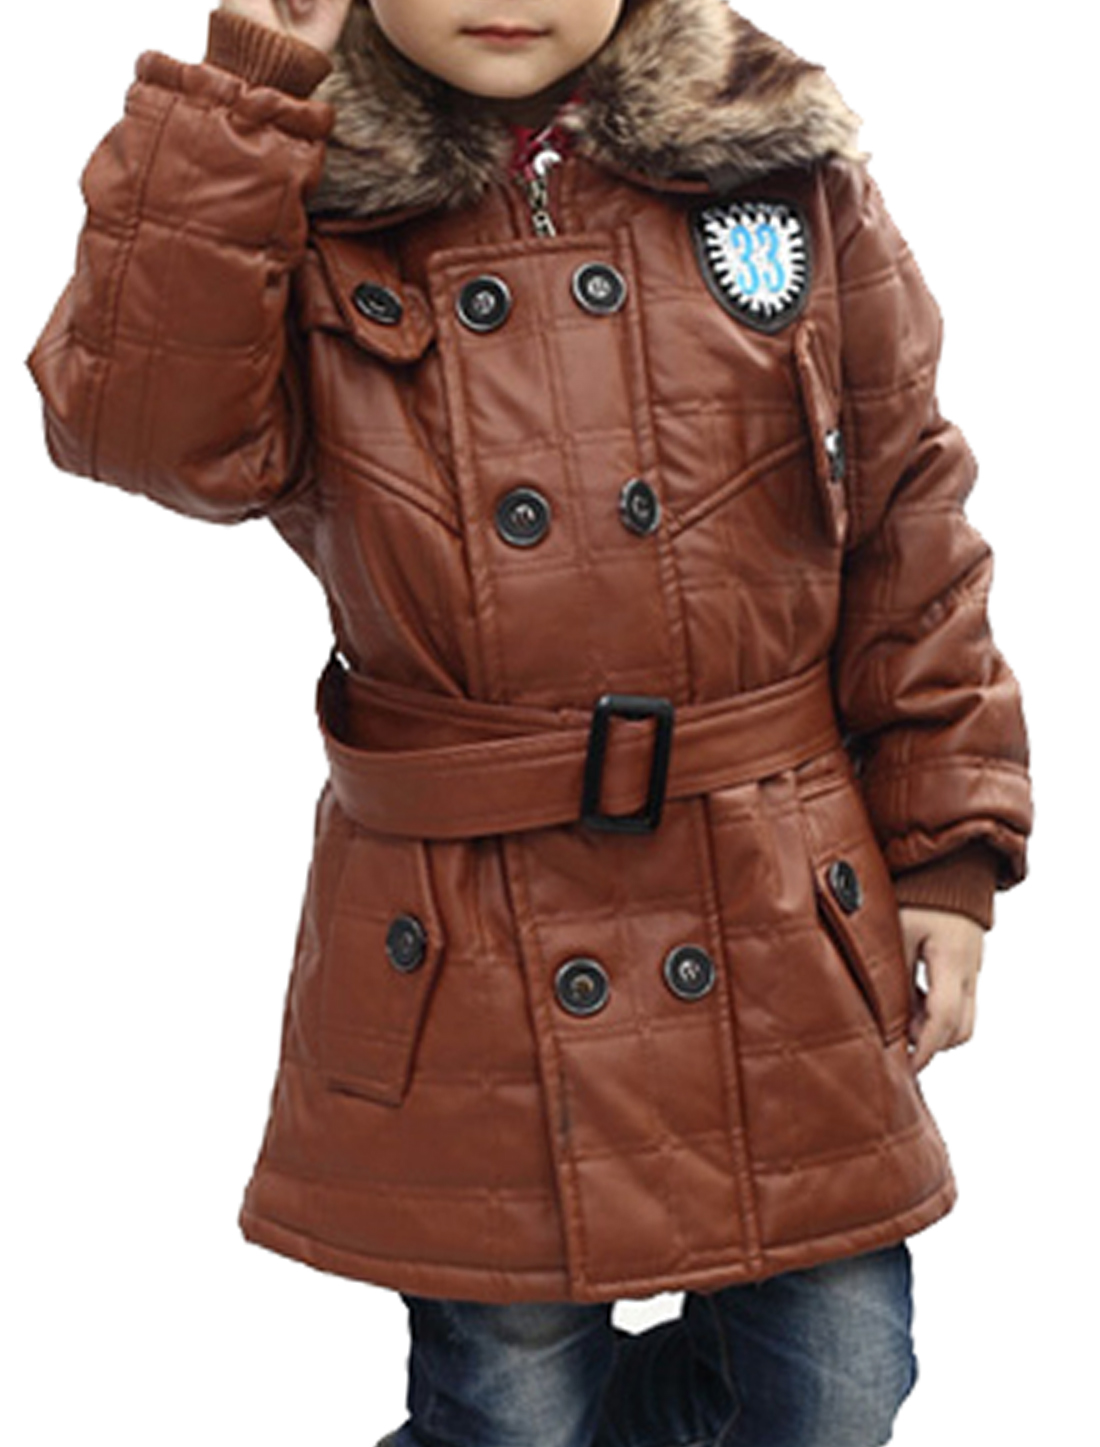 Boys Button Down Elastic Cuffs Winter Wearing Jacket Brown 10